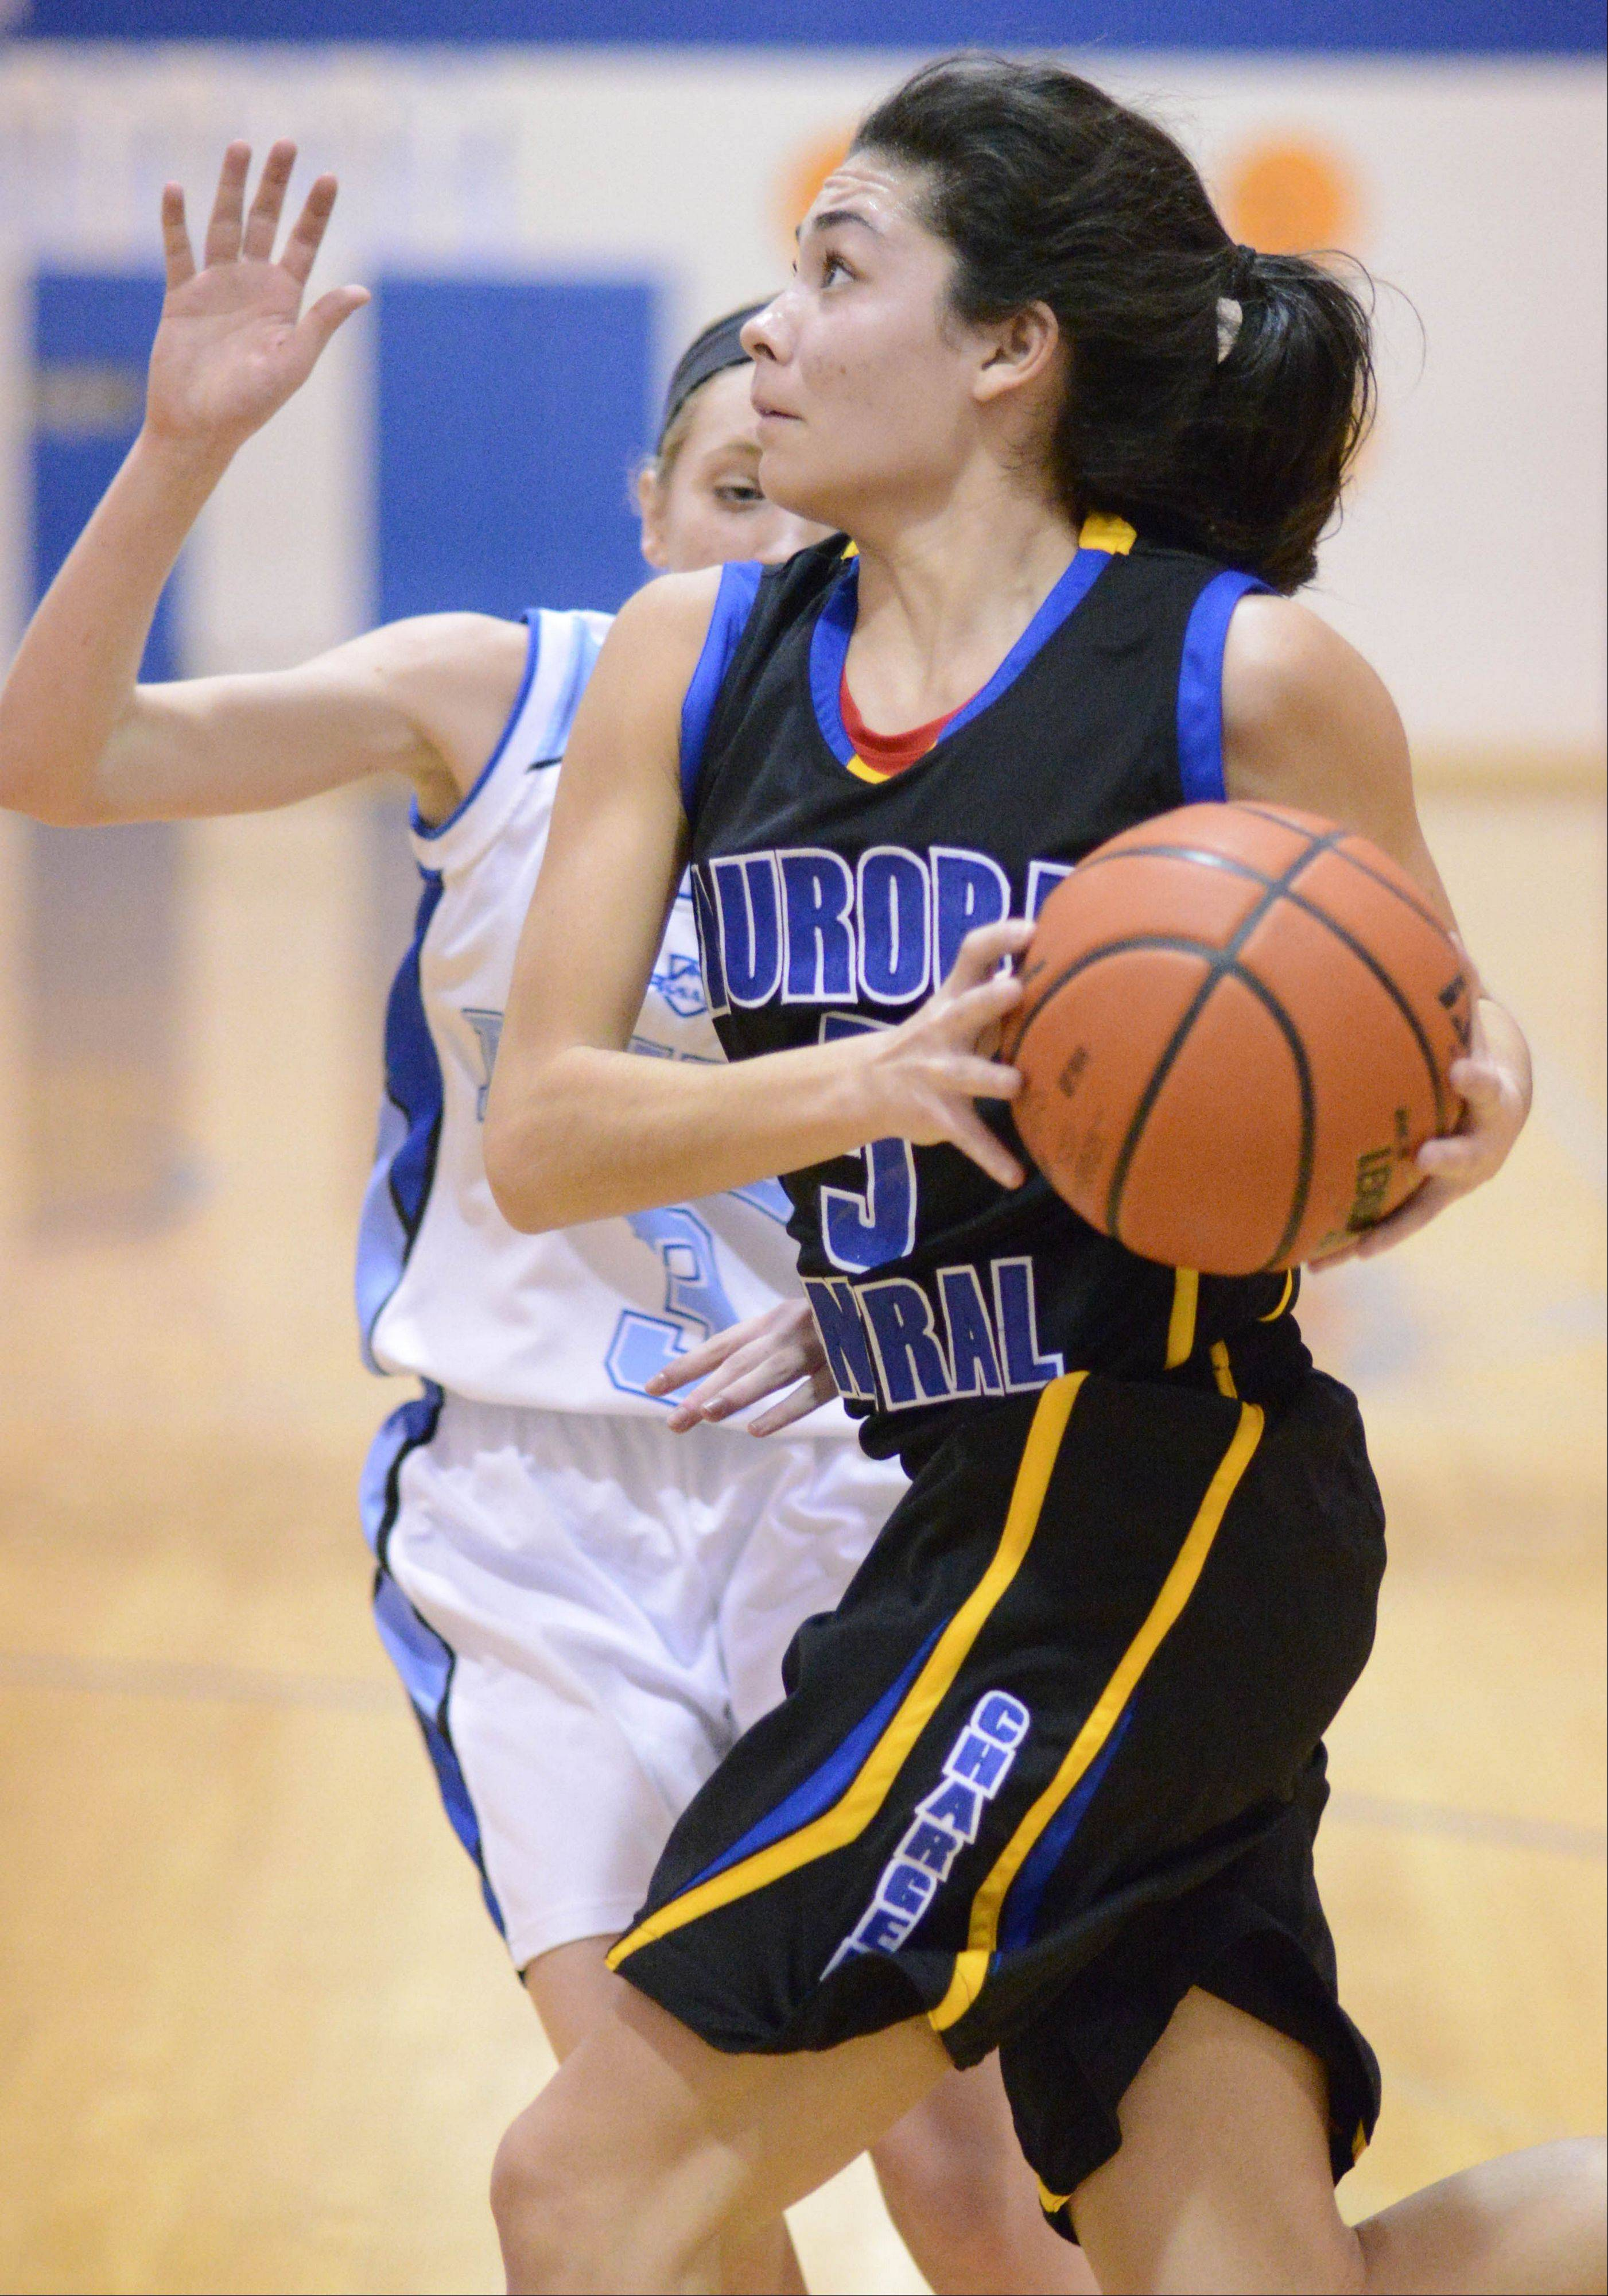 Images from the Aurora Central Catholic vs. Rosary girls basketball game Wednesday, January 30, 2013.